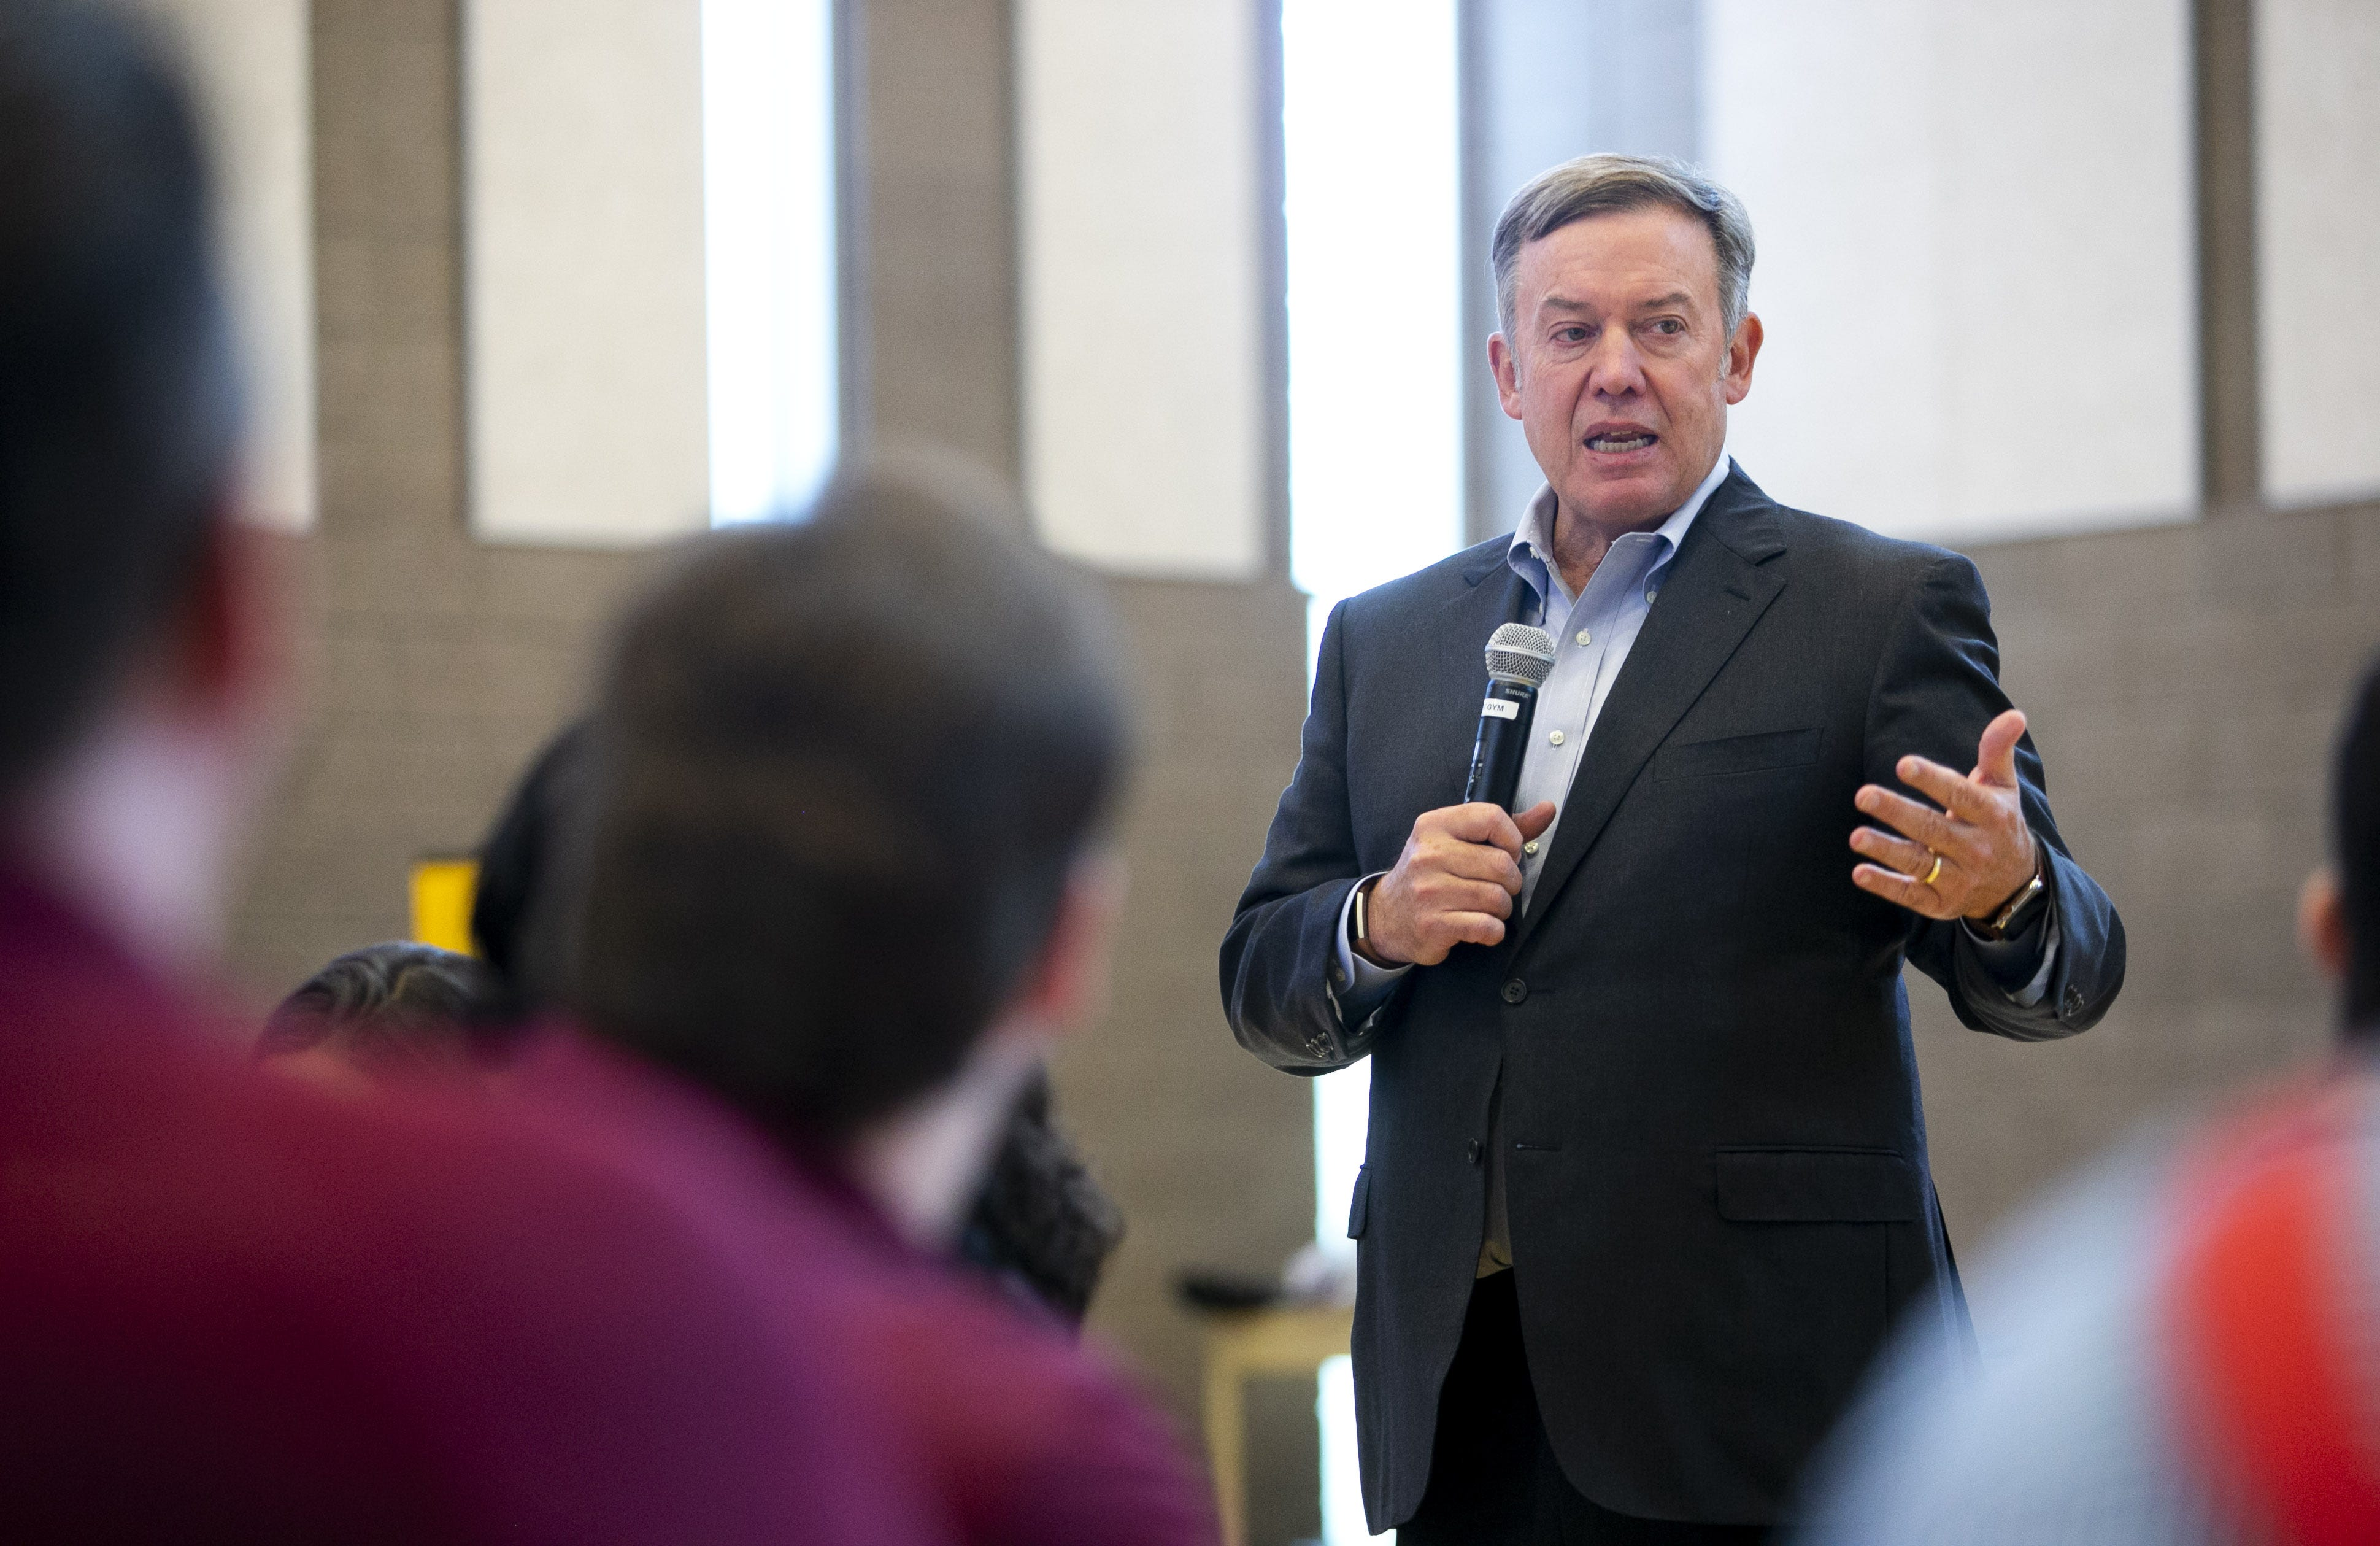 ASU President Michael Crow speaks to staff during a staff forum at the ASU Polytechnic campus on Oct. 31, 2018.